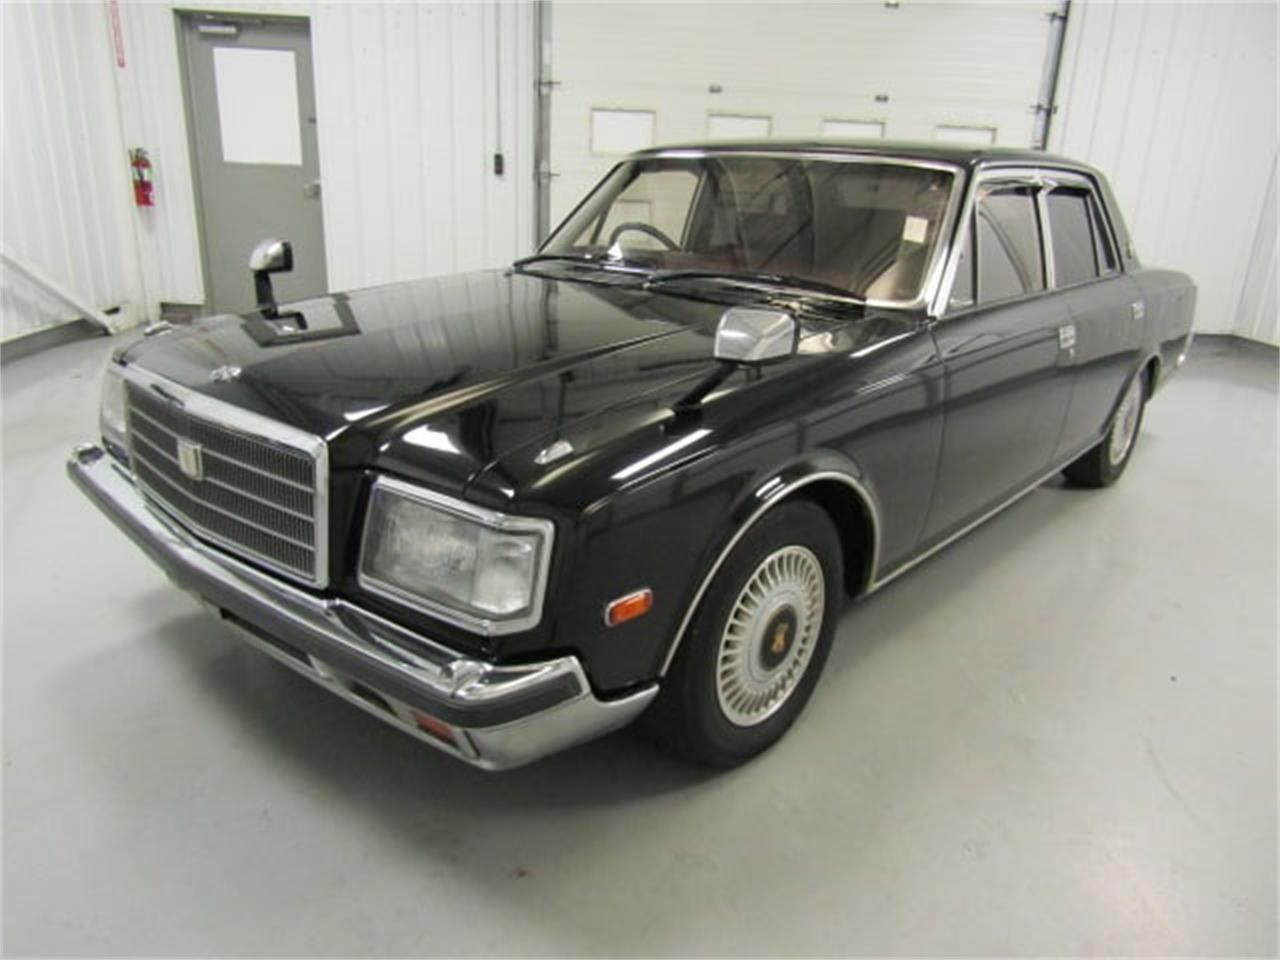 Large Picture of 1989 Toyota Century located in Virginia - $8,989.00 - JM37